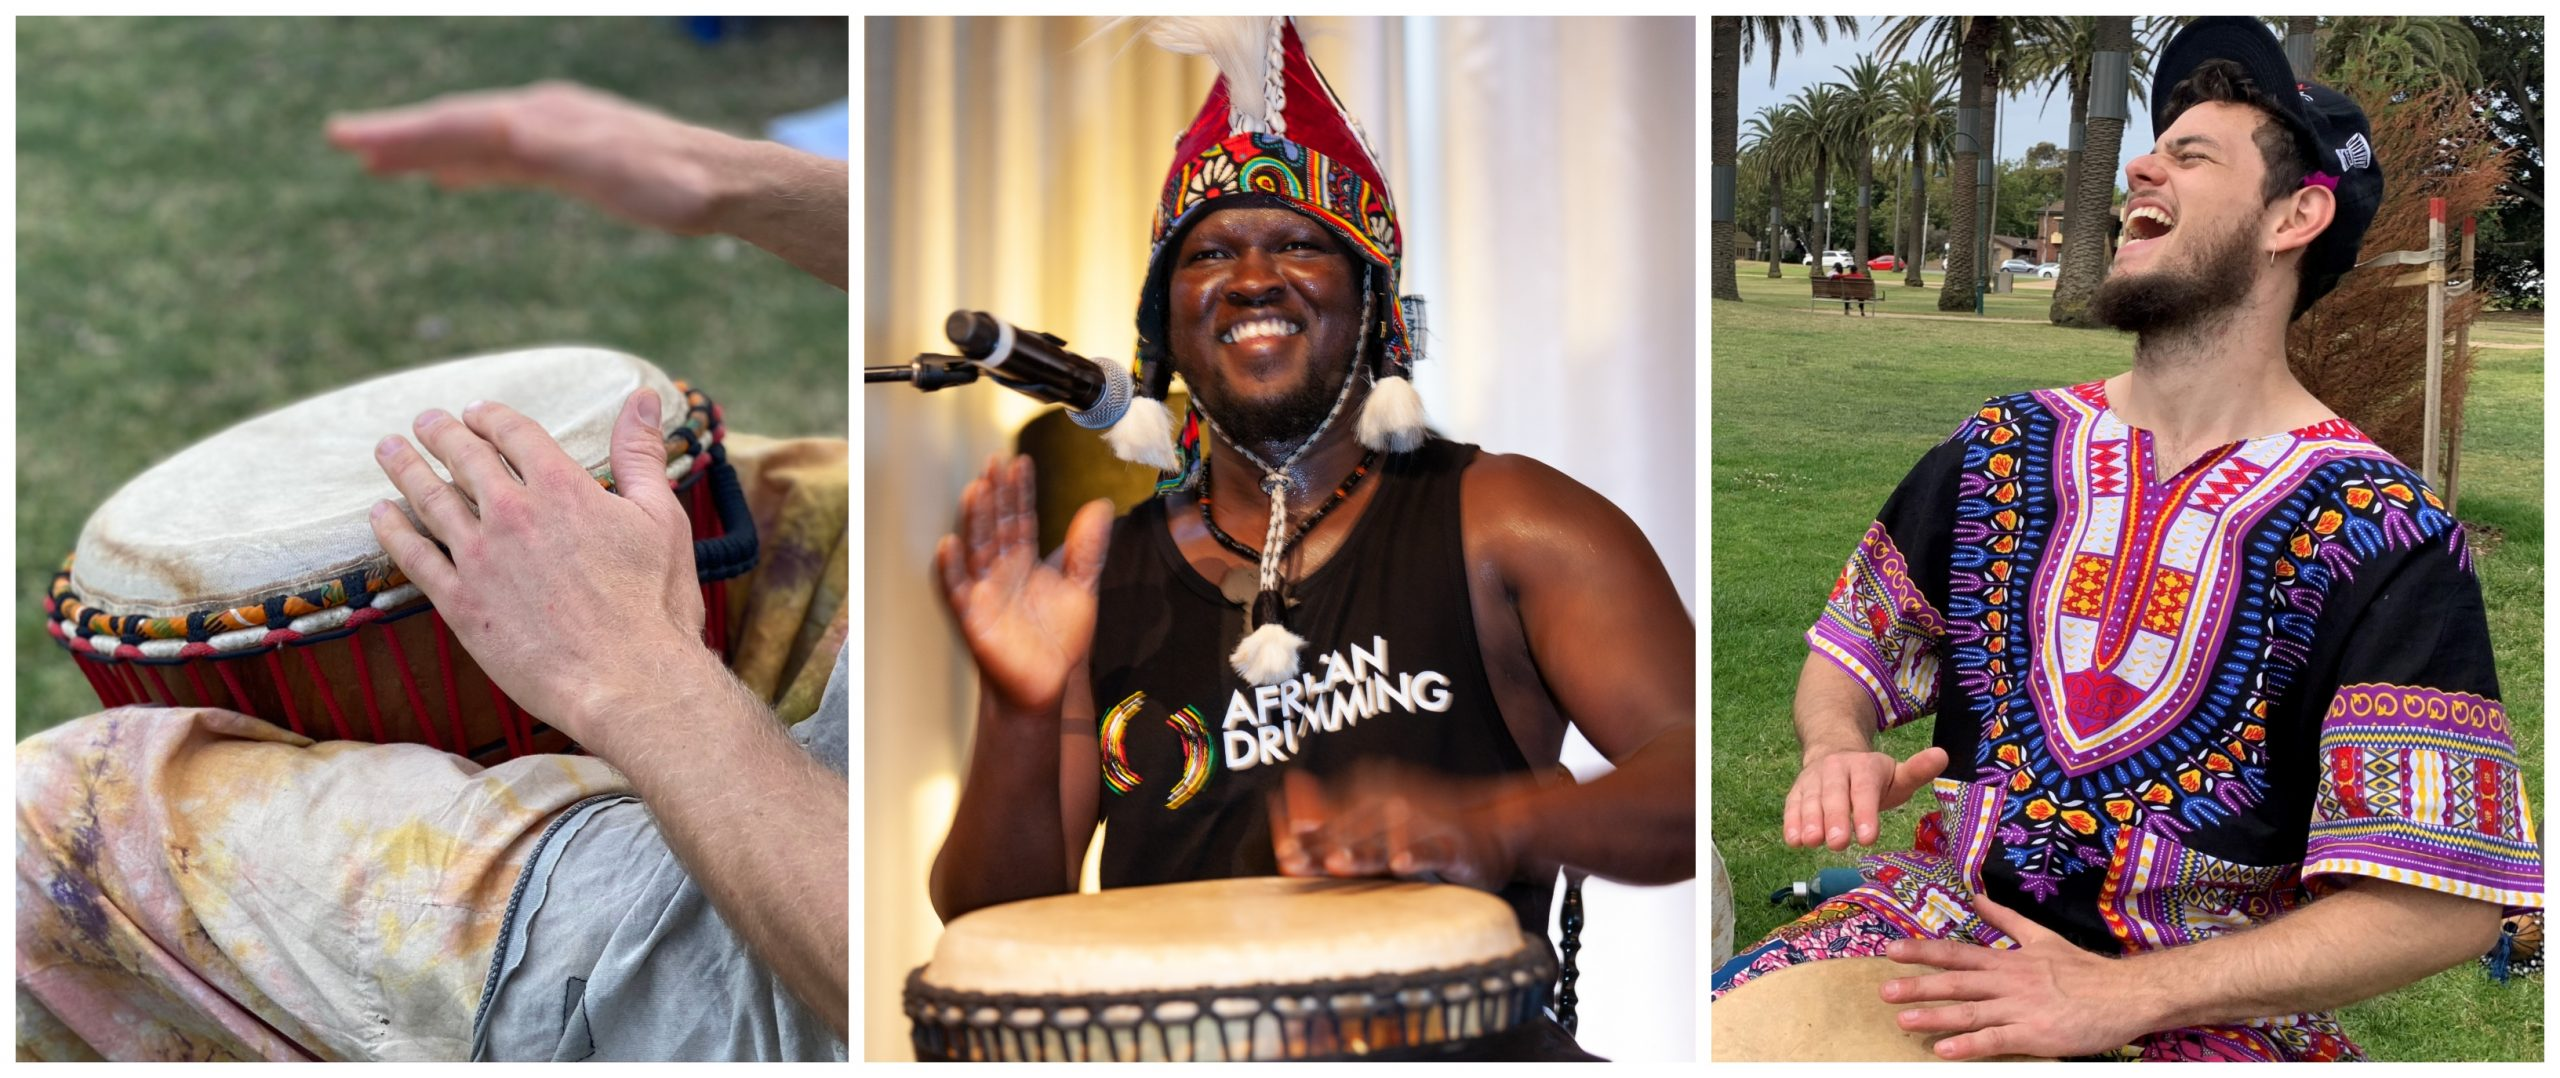 Join our drumming classes on September 27th!